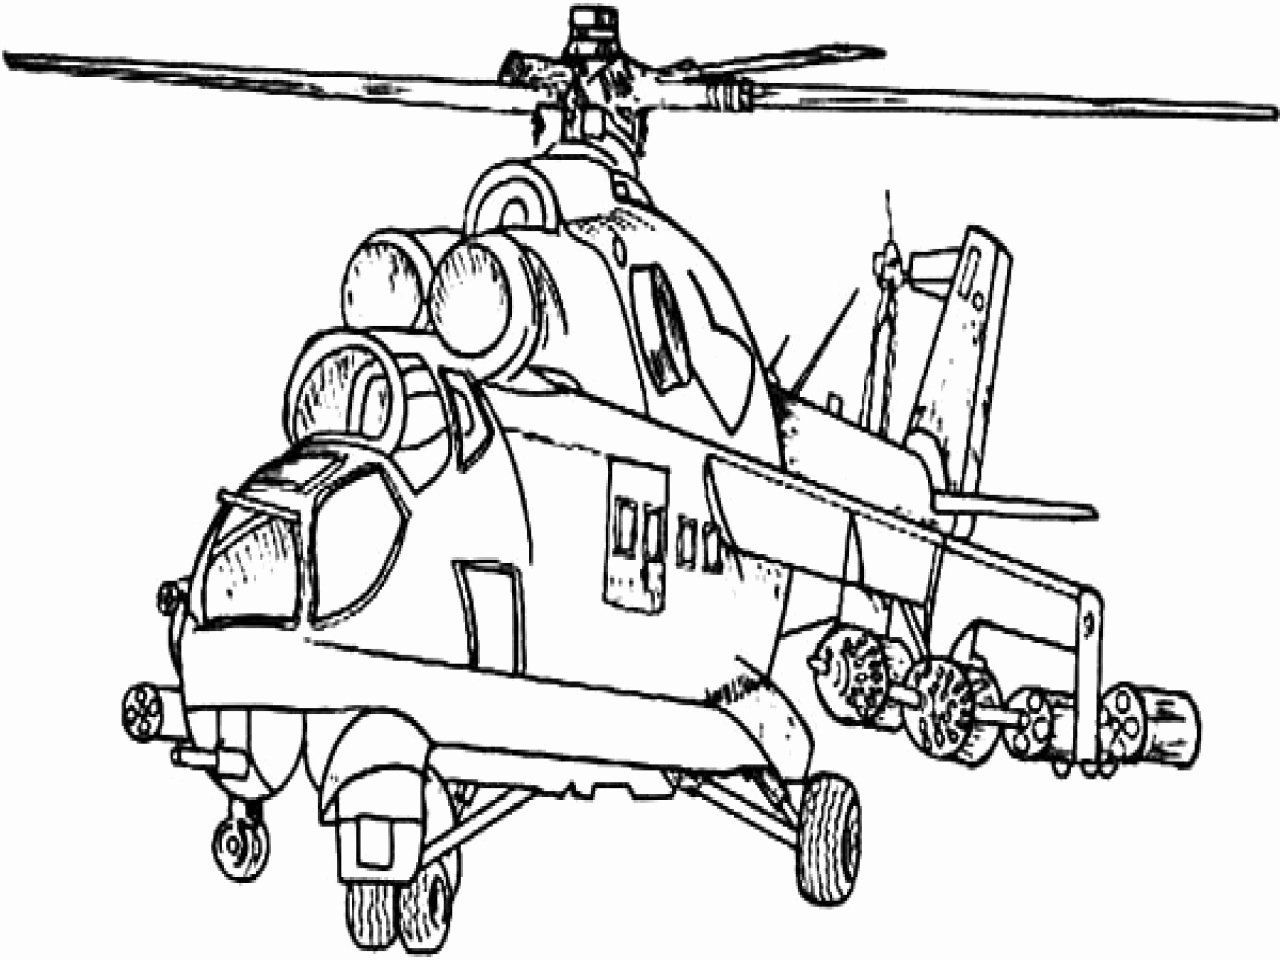 Holicopter Coloring Pages For Adults Truck Coloring Pages Airplane Coloring Pages Coloring Pages